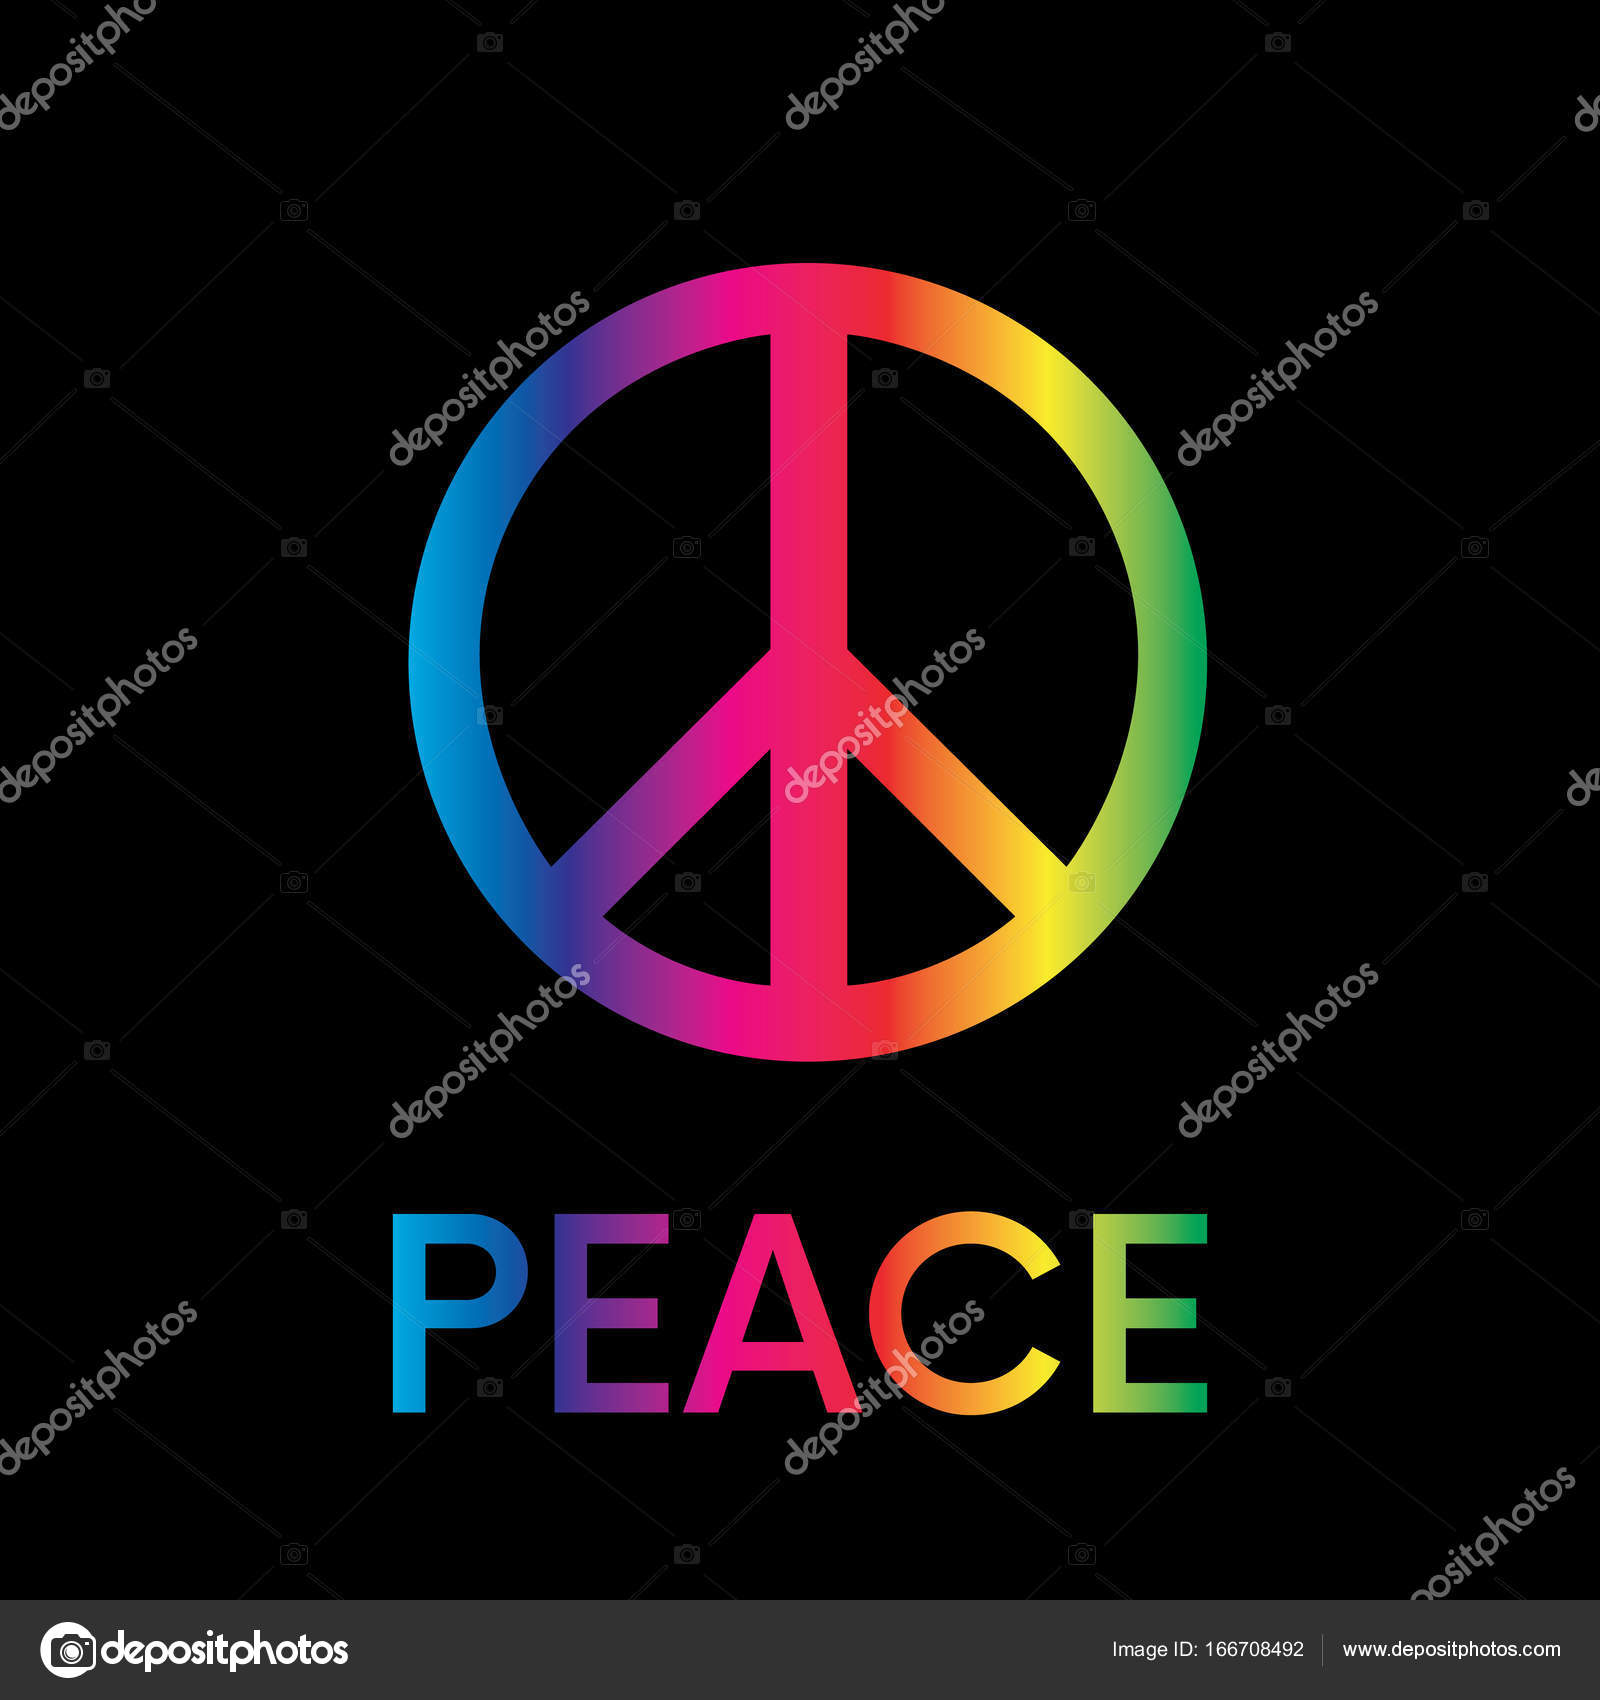 Rainbow symbol of pacifism against racism homophobia and war rainbow symbol of pacifism against racism homophobia and war peace vector illustration biocorpaavc Images